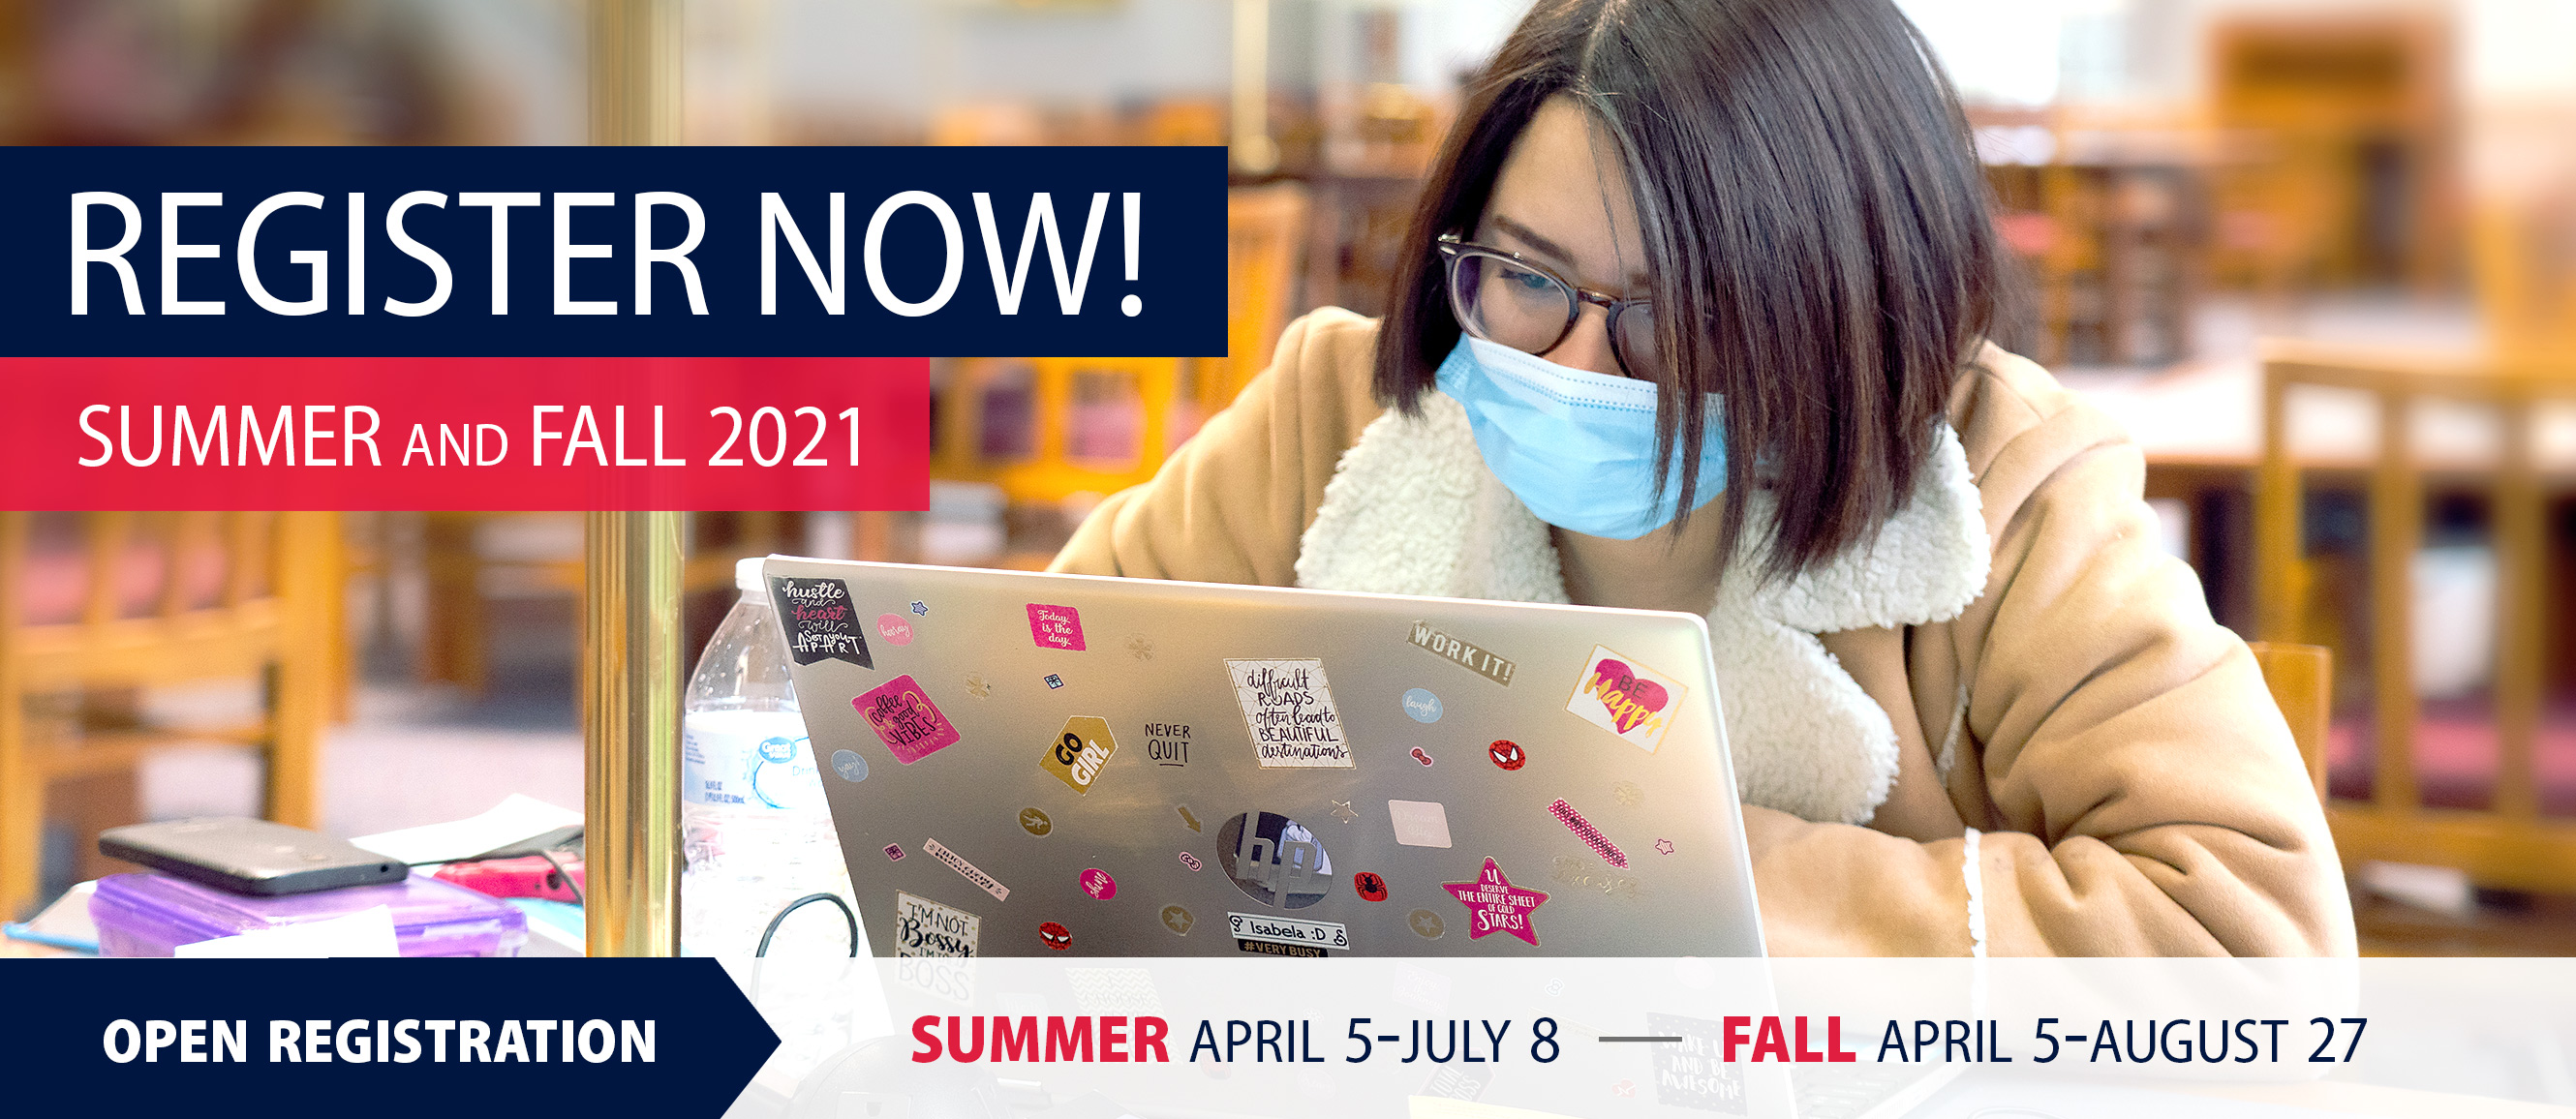 Register Now Summer and Fall 2021. Open Registraton Summer April 5-July 8 and Fall April 5-August 27.